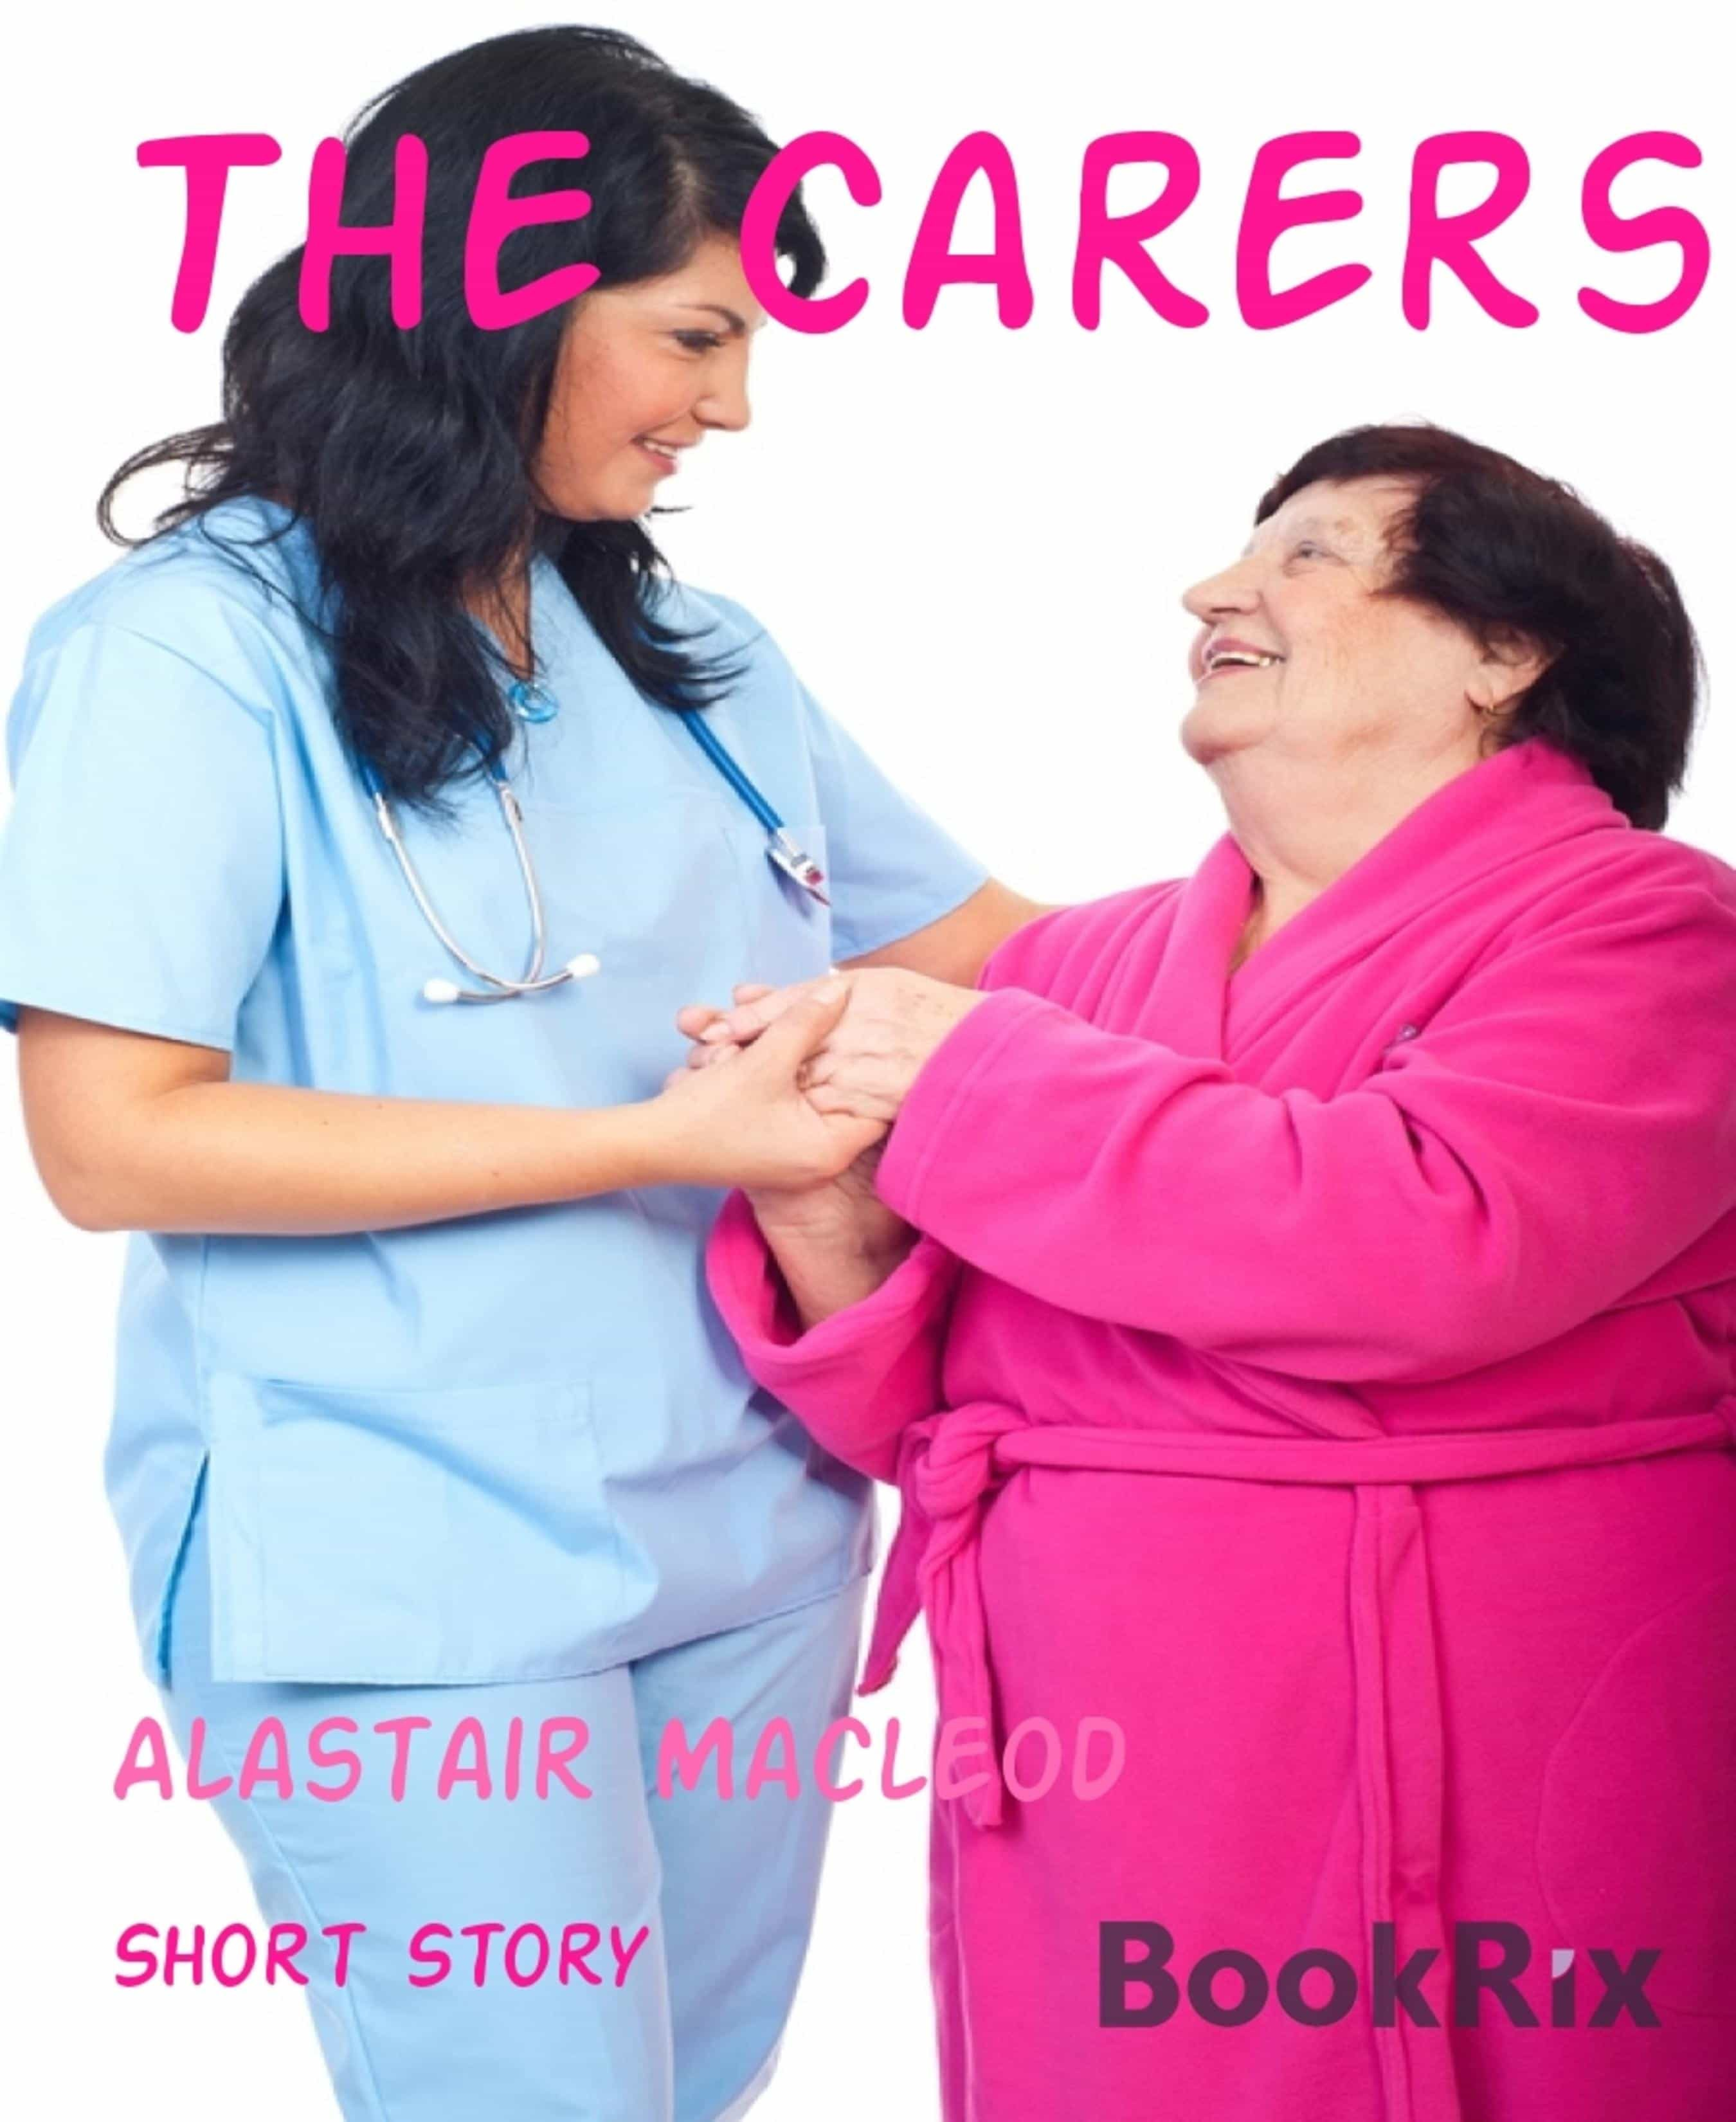 THE CARERS